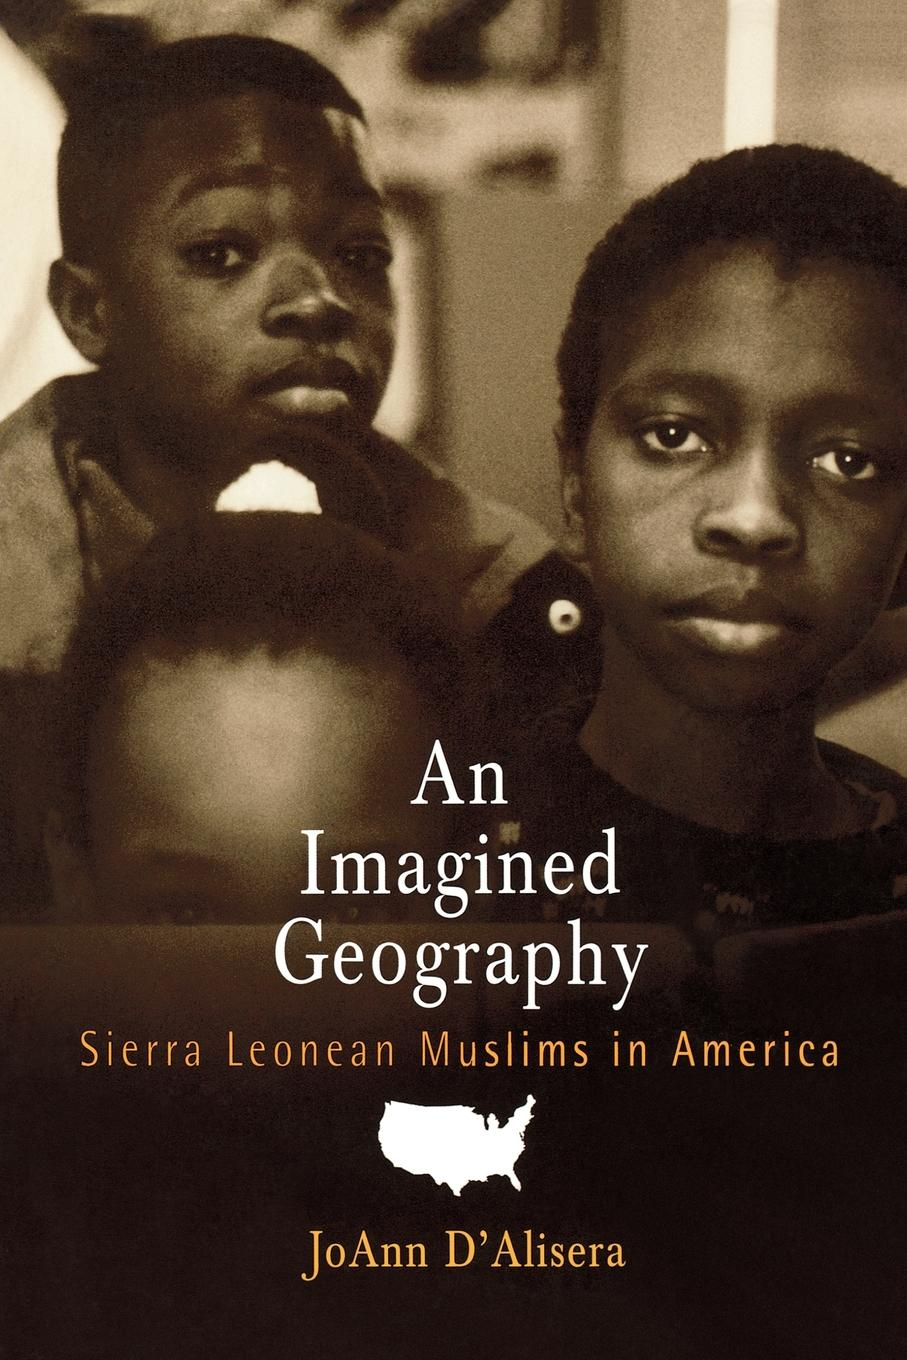 An Imagined Geography Sierra Leonean Muslims in America